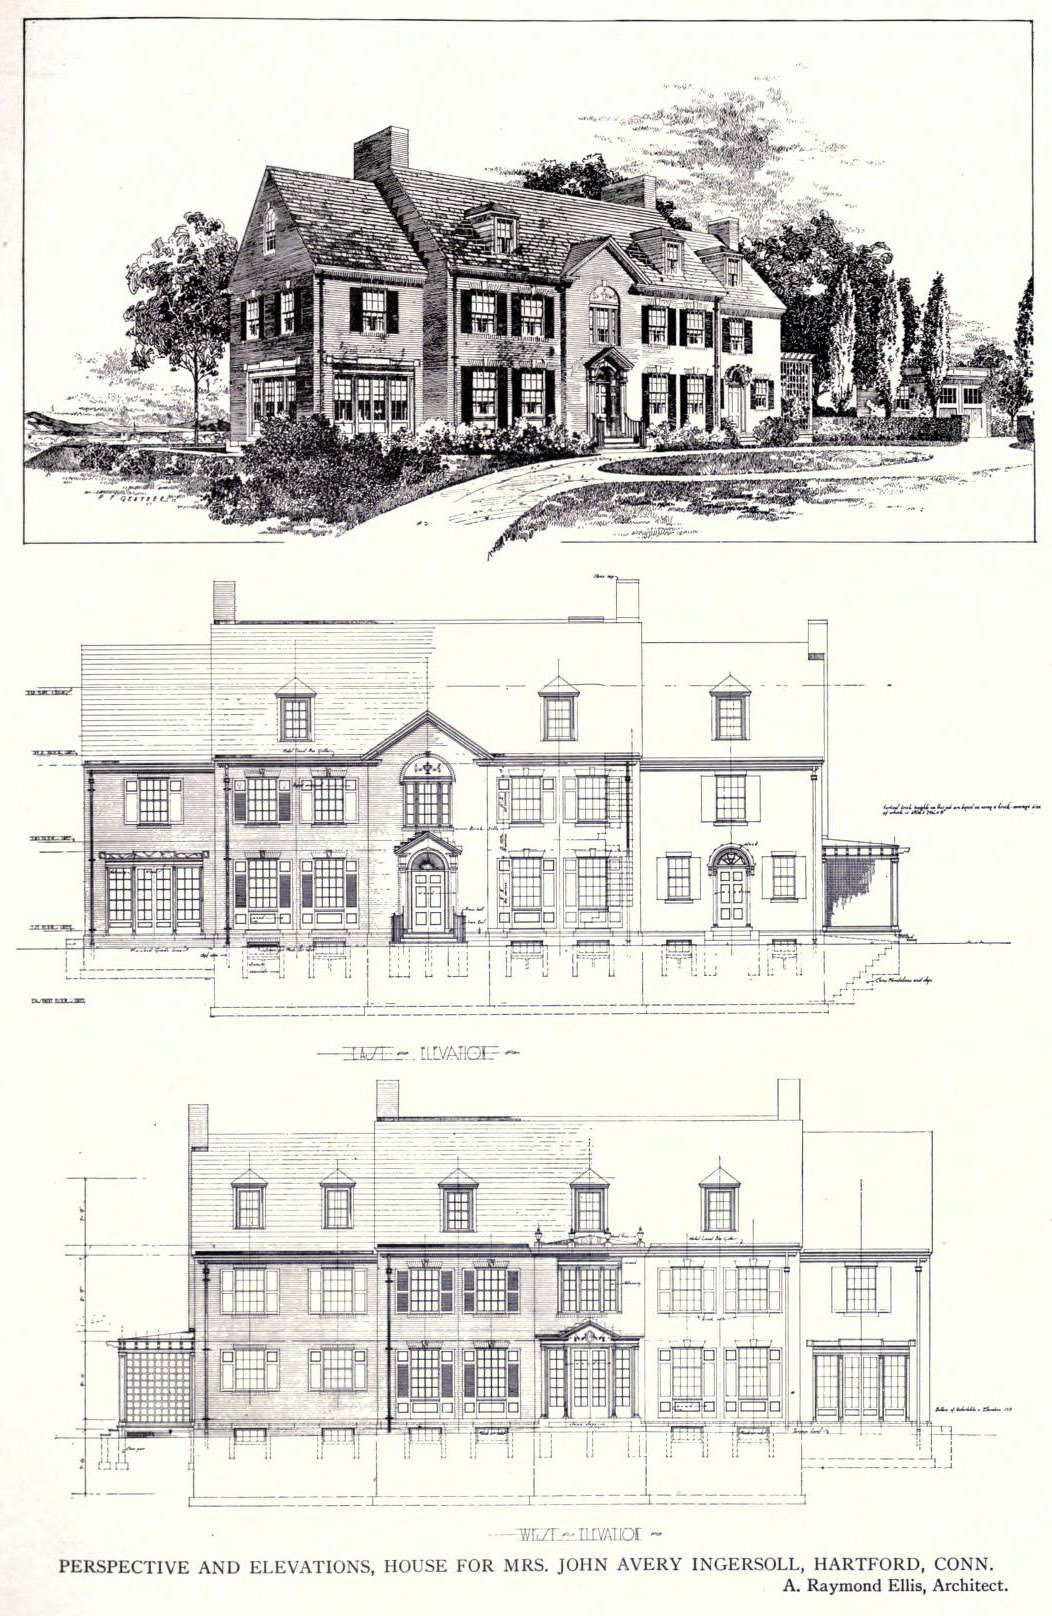 Perspective and elevations for a residence, Hartford